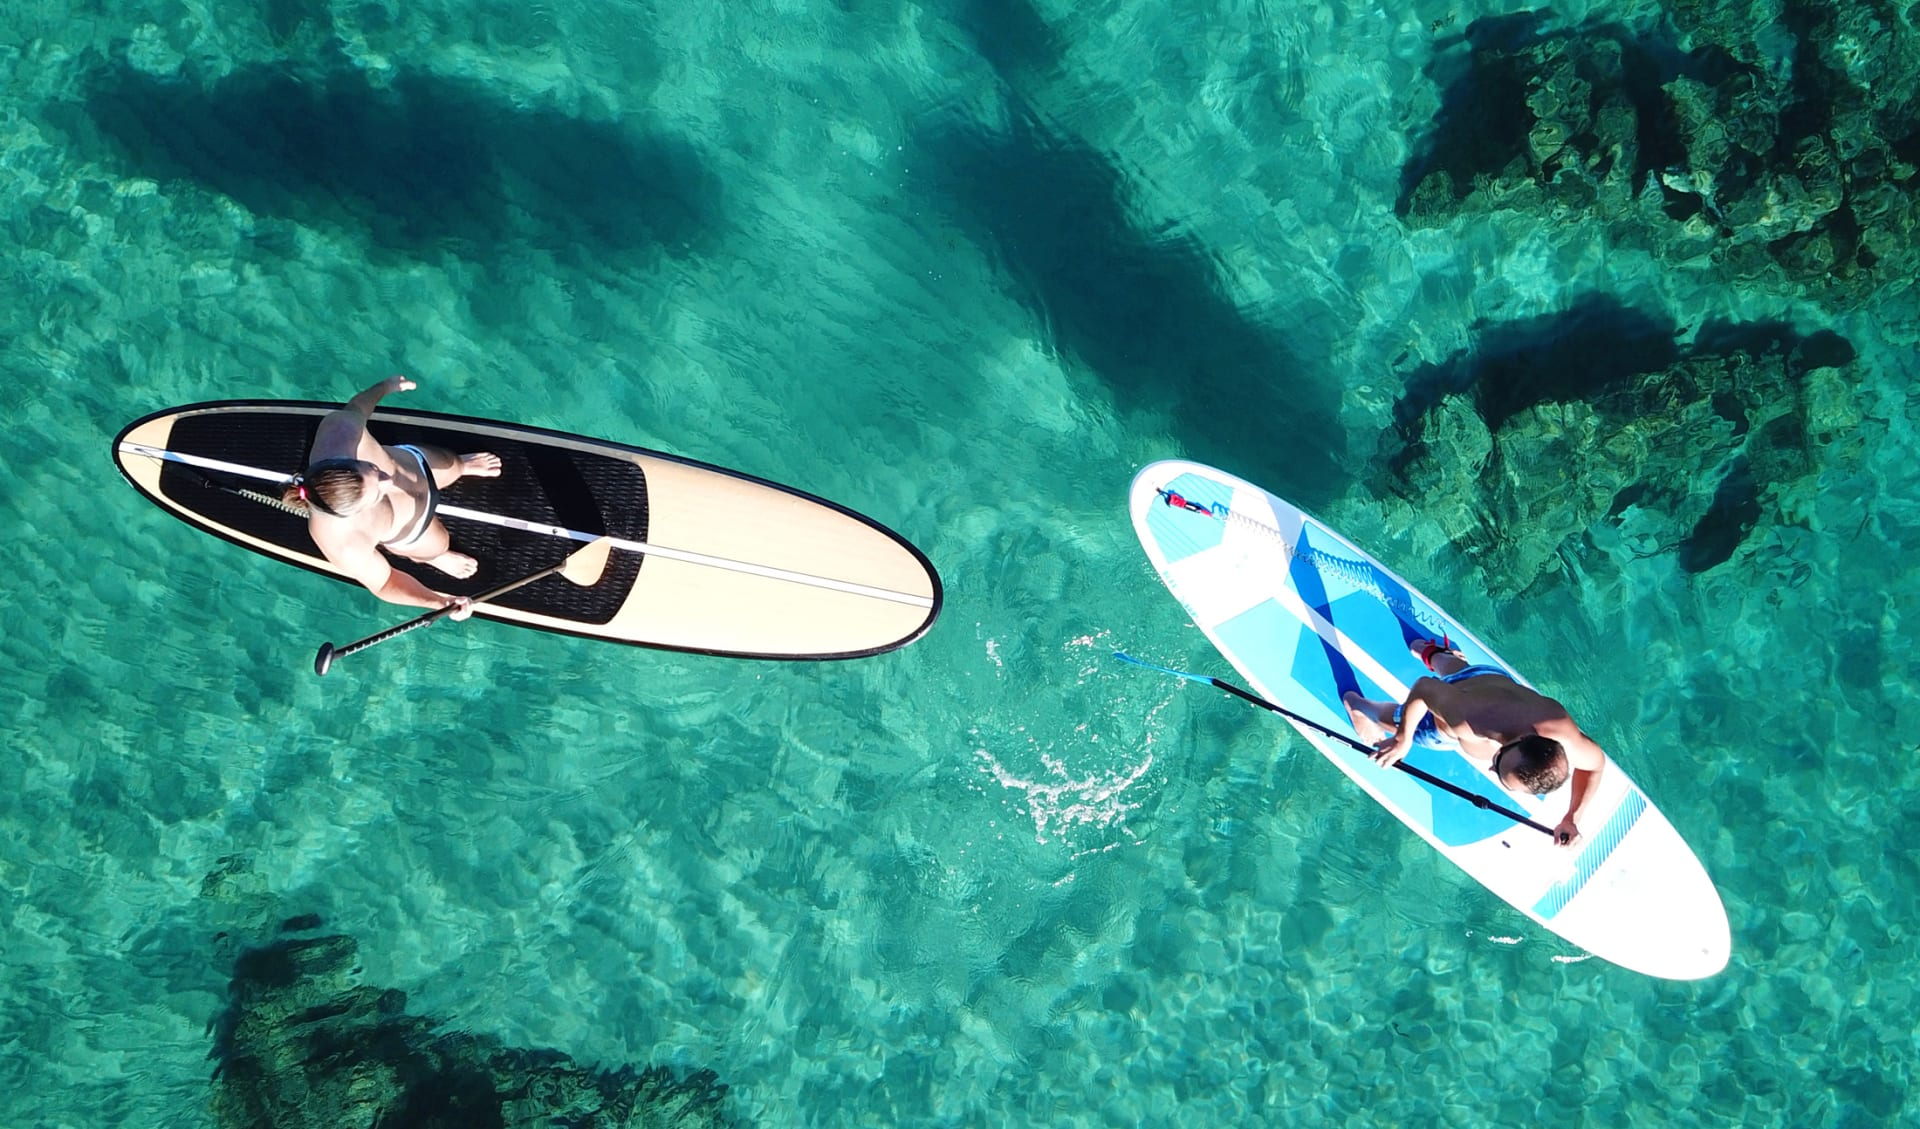 Stand Up Paddle im Meer